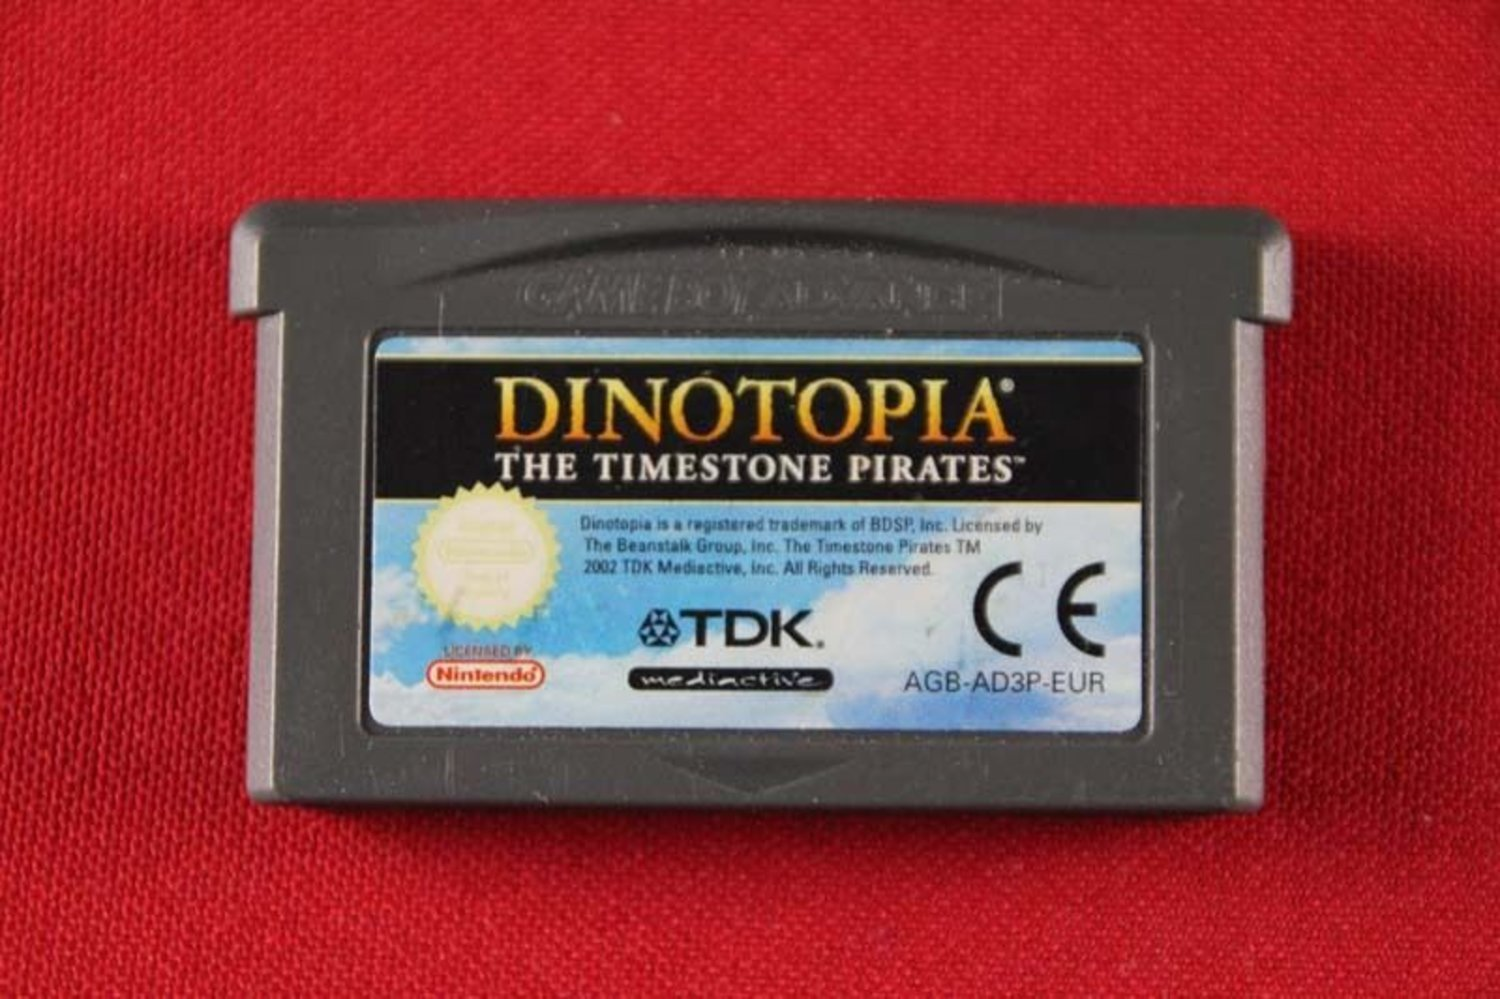 Dinotopia: The Timestone Pirates - Gameboy Advance